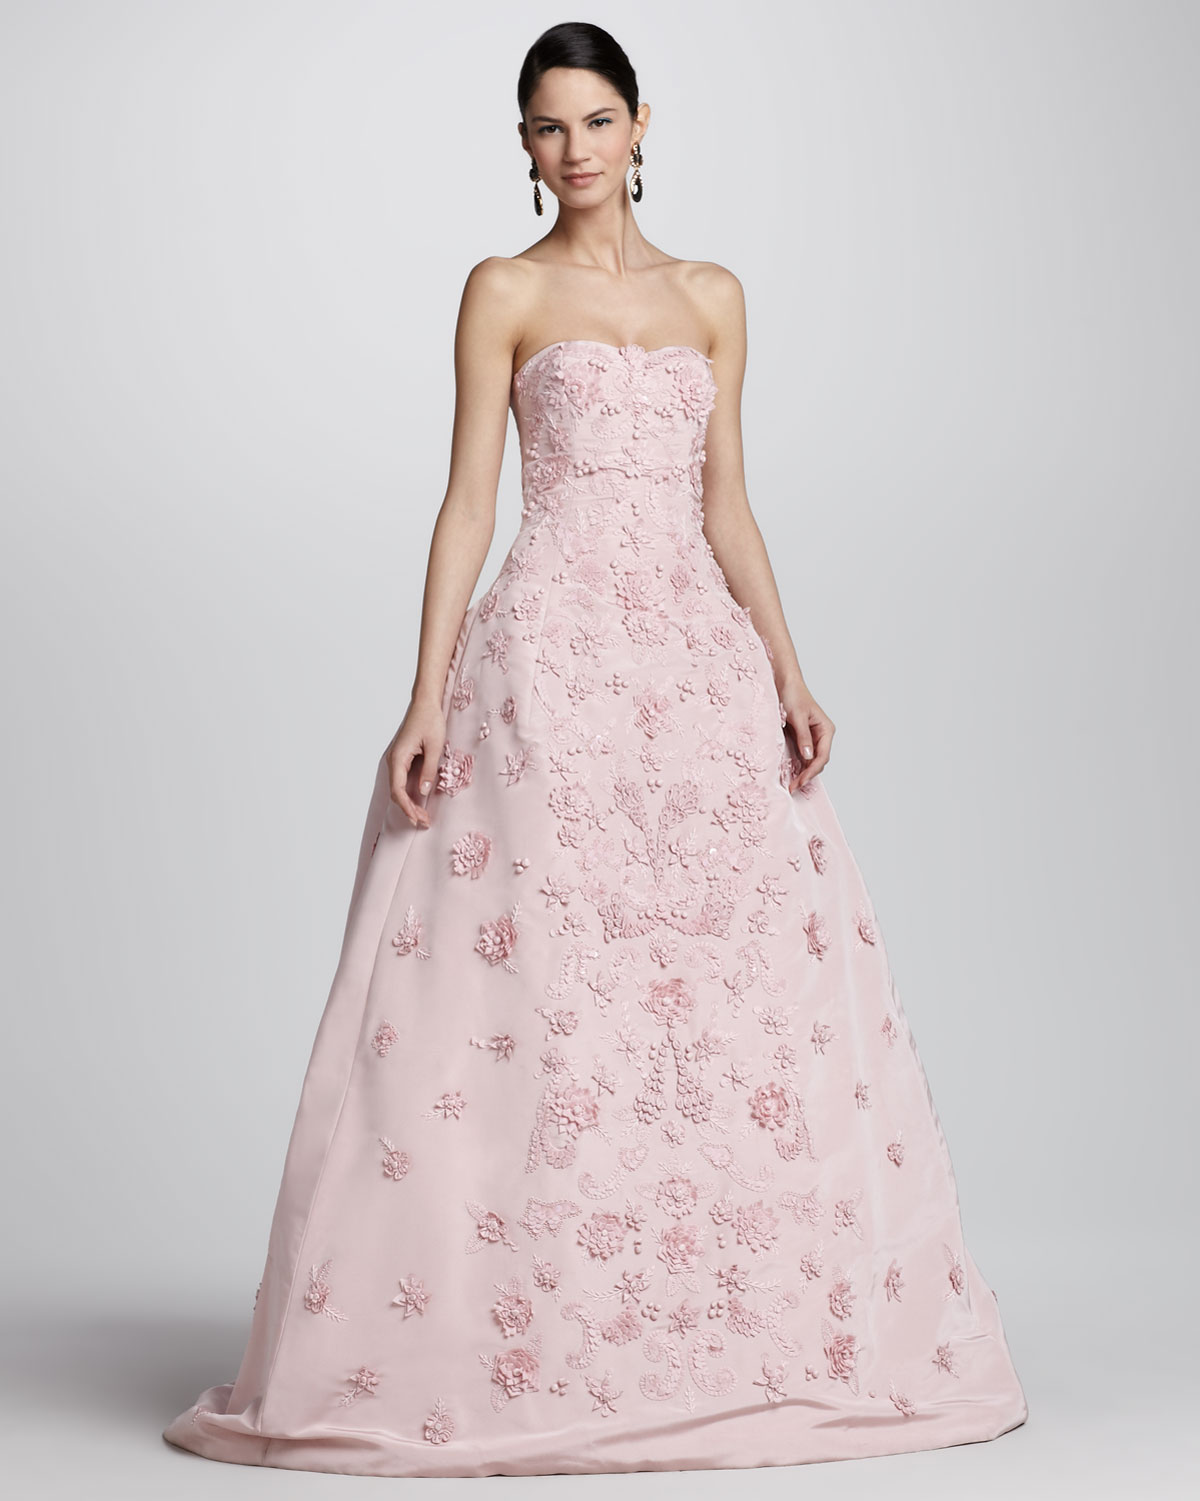 Lyst Oscar De La Renta Strapless Floral Applique Ball Gown In Pink